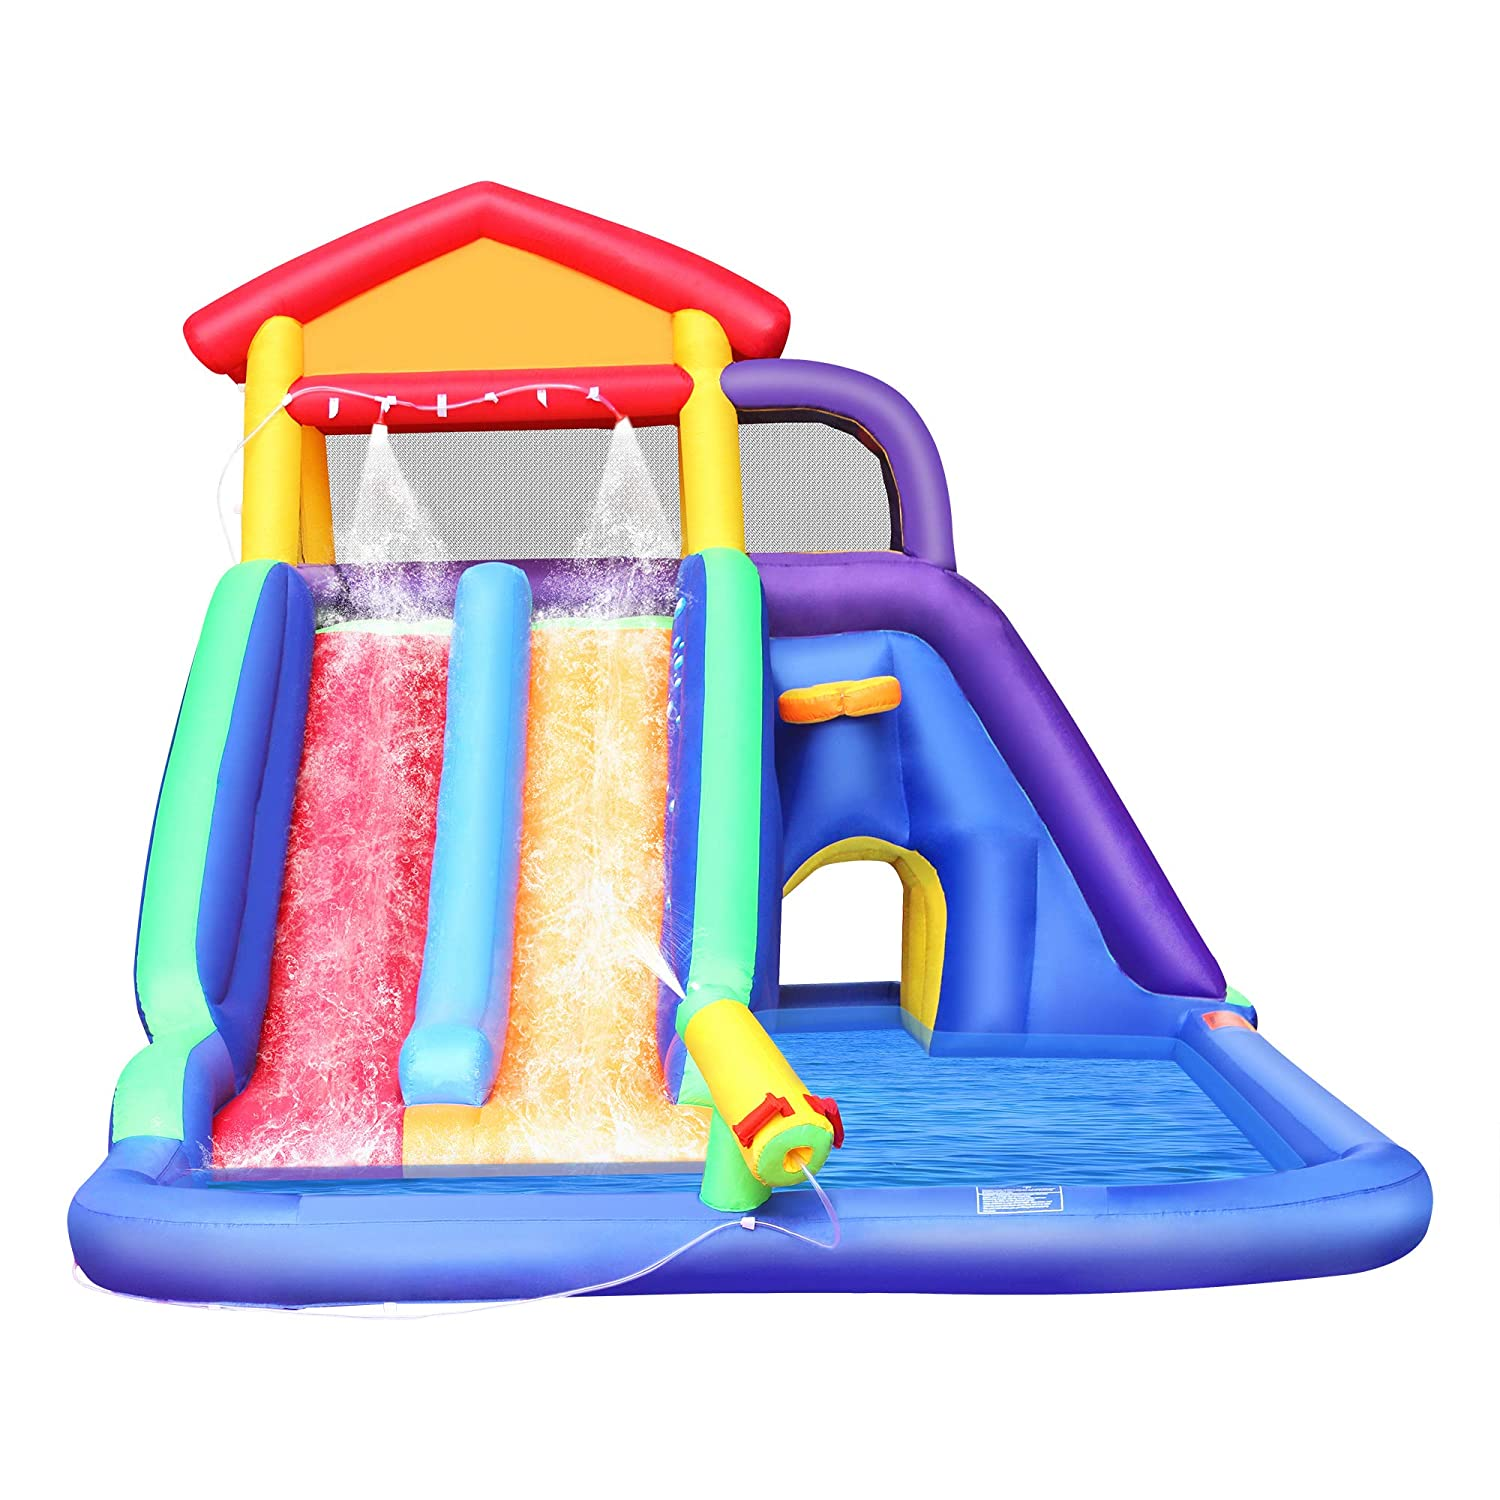 with Blower Pool Water Slide for Toddler Bouncy Splash Park for Outdoor Fun BestParty Inflatable Kids Water Slide